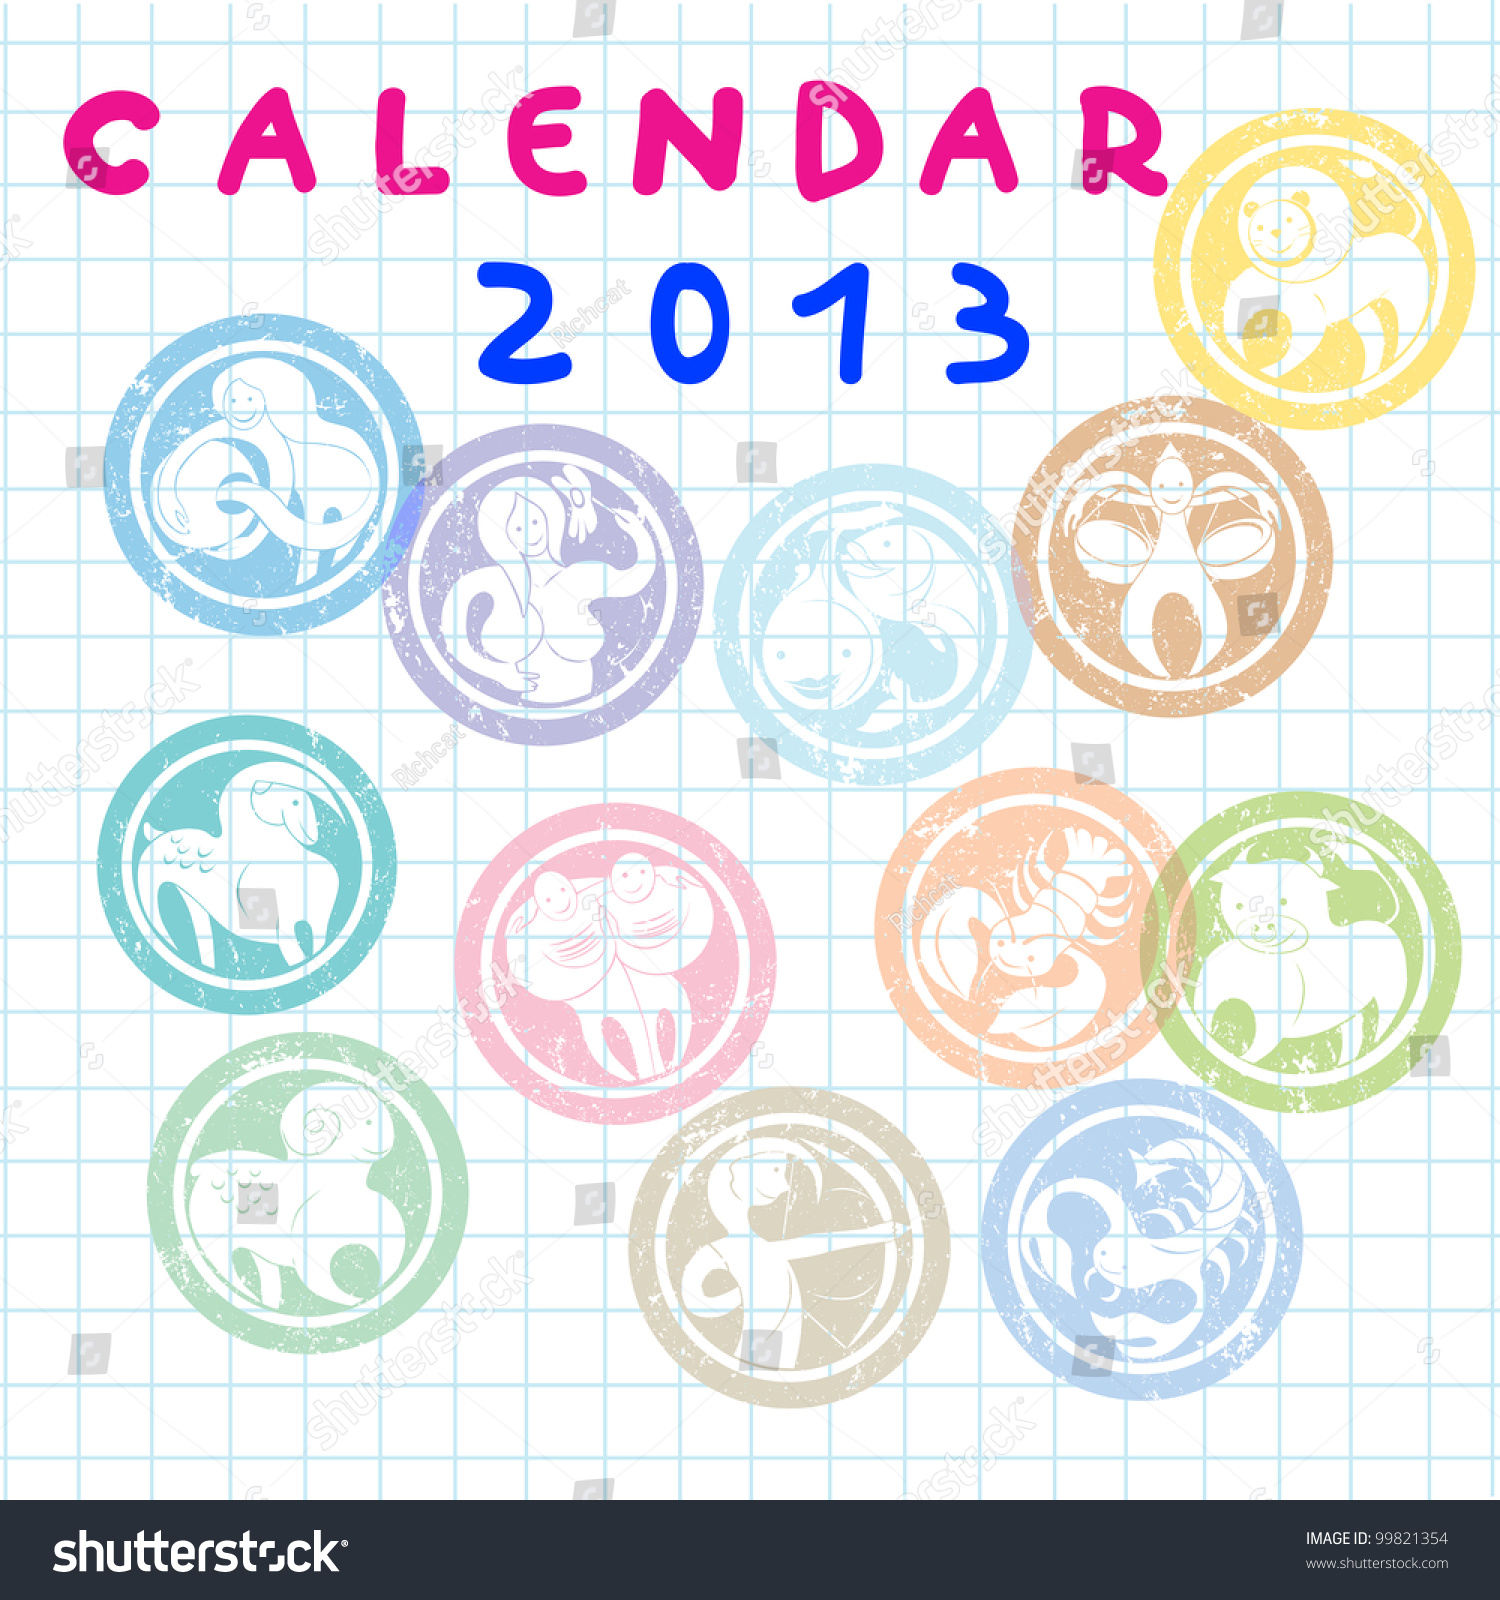 Monthly Calendar Horoscope : Cover for monthly calendar with zodiac signs stock